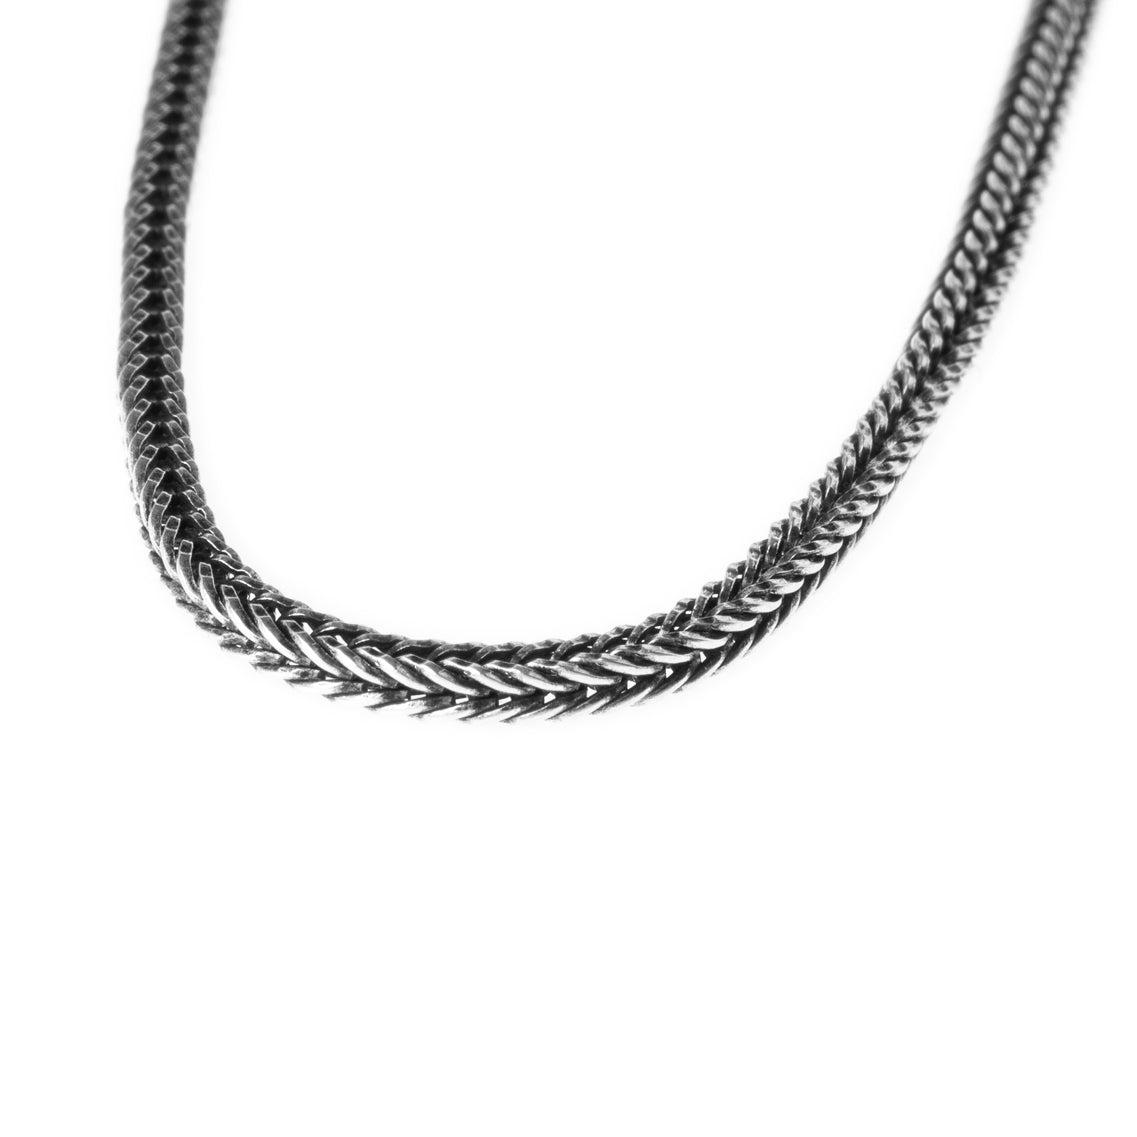 Sterling Silver Spiga Chain with Ring Clasp C-7947